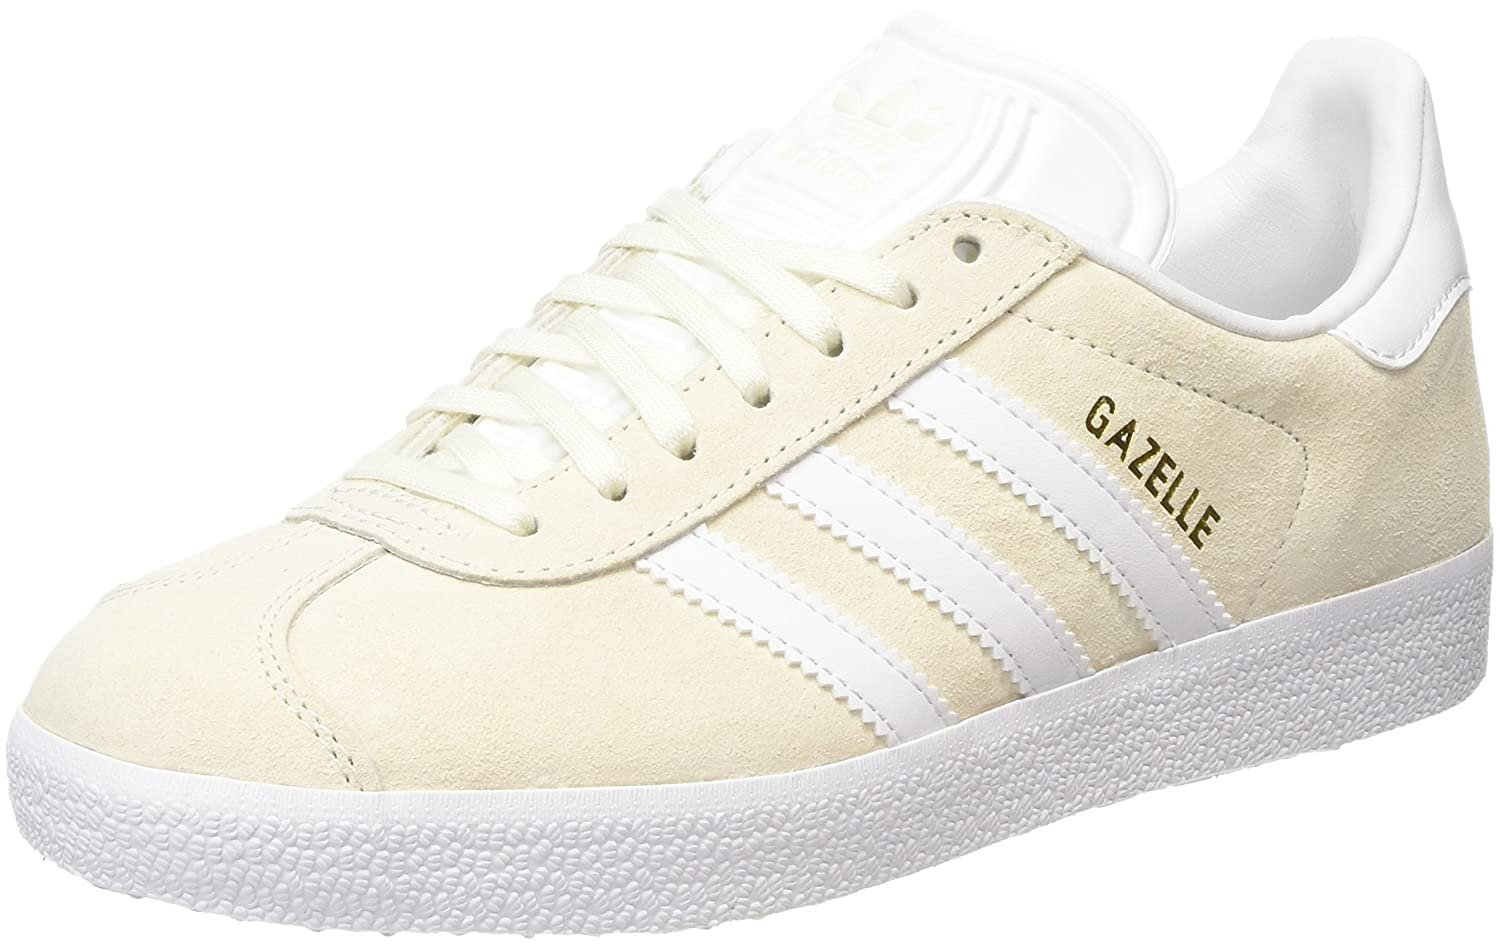 Off White (Off White) adidas Unisex Adults' Gazelle Low-Top Sneakers